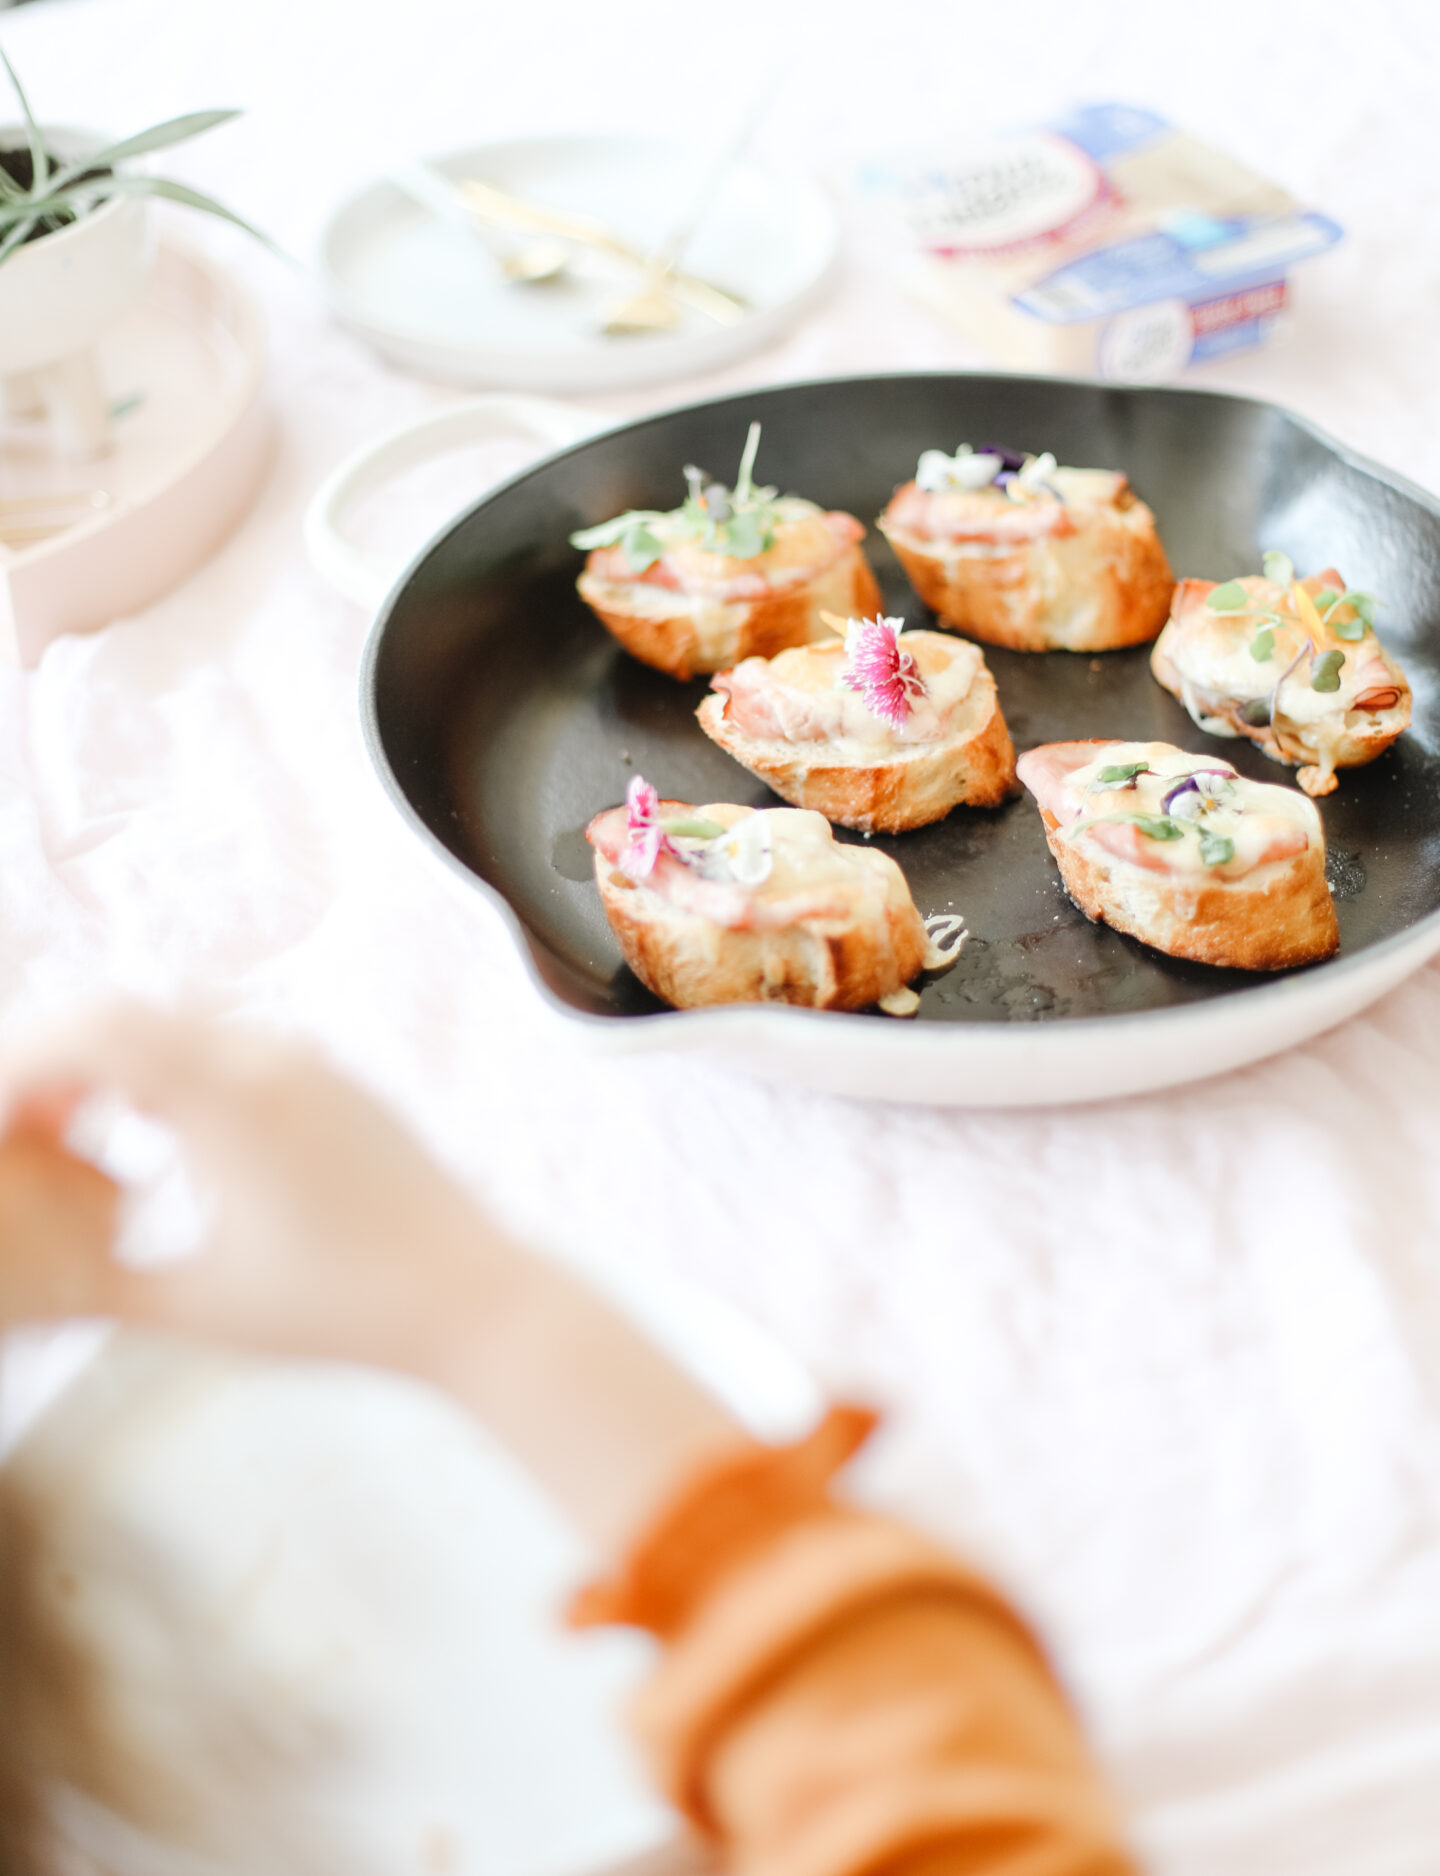 Perfect kids snack: these savoury french toasts